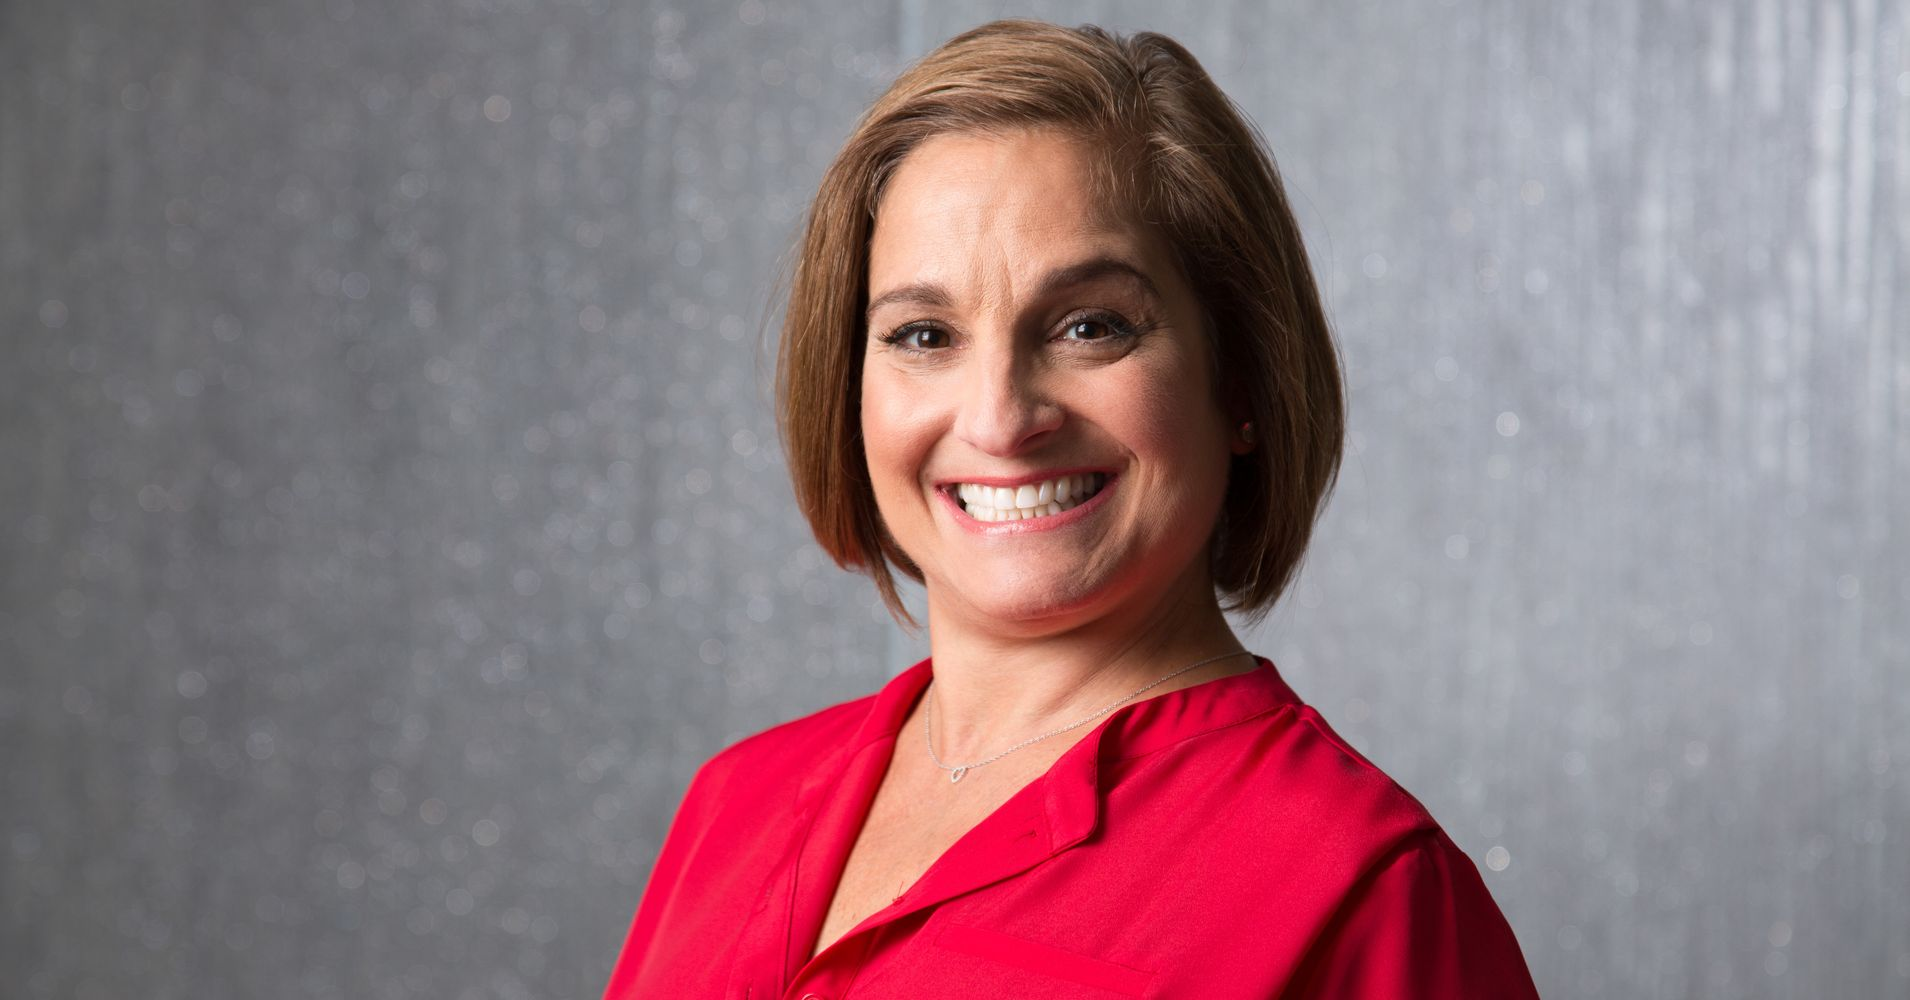 Mary Lou Retton Kelley born January 24 1968 is a retired American gymnast At the 1984 Summer Olympics in Los Angeles she won a gold medal in the individual all